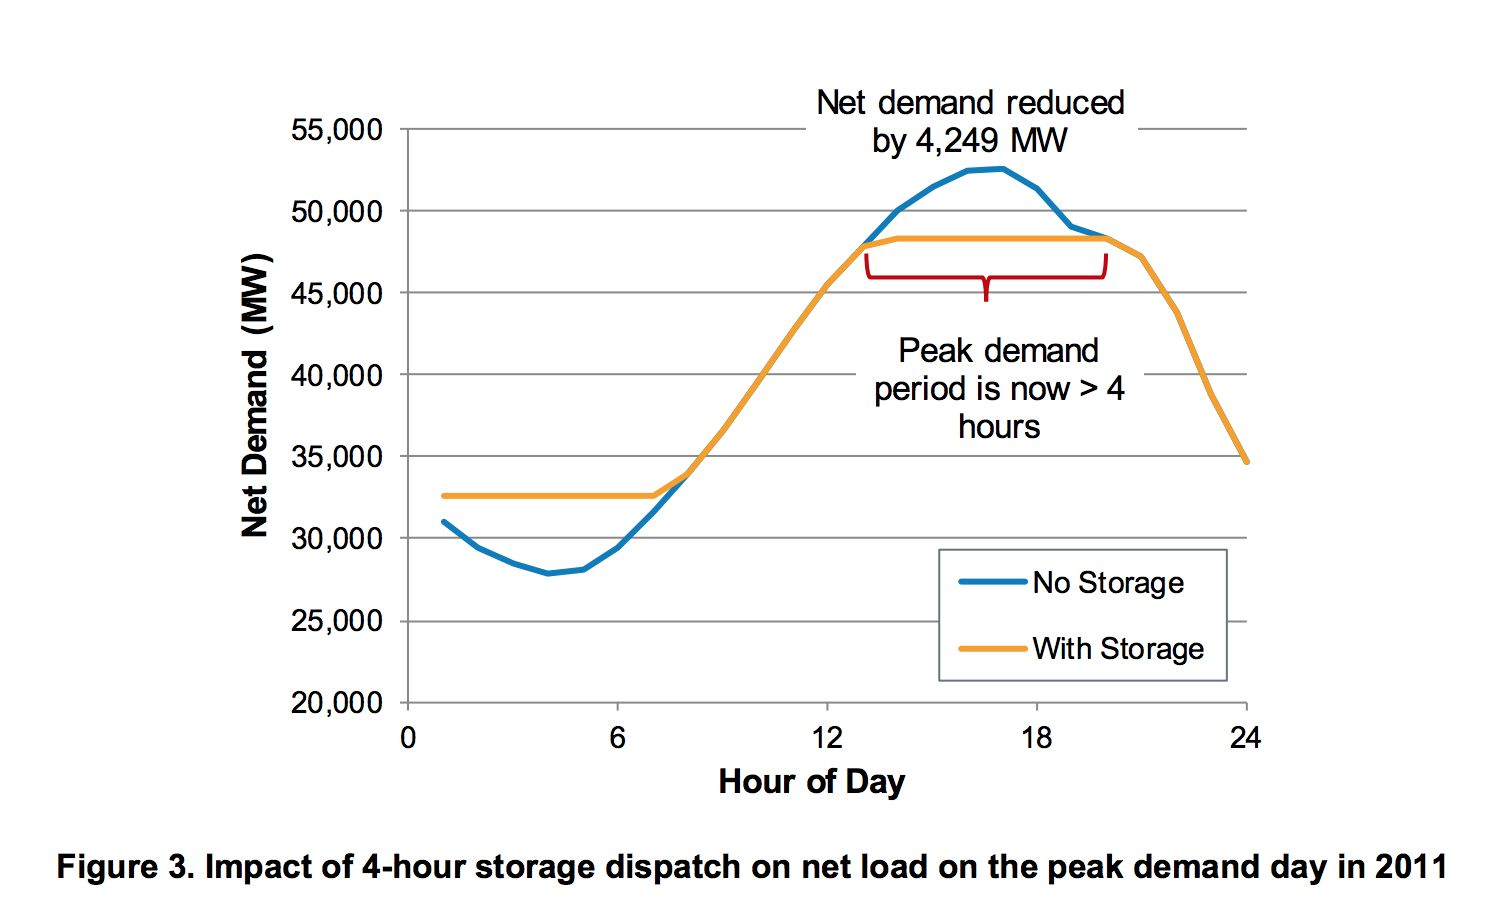 Once enough 4-hour storage enters the market for peak capacity, it will flatten the peak to longer than 4 hours, creating a market limit for that kind of asset. (Image credit: NREL)